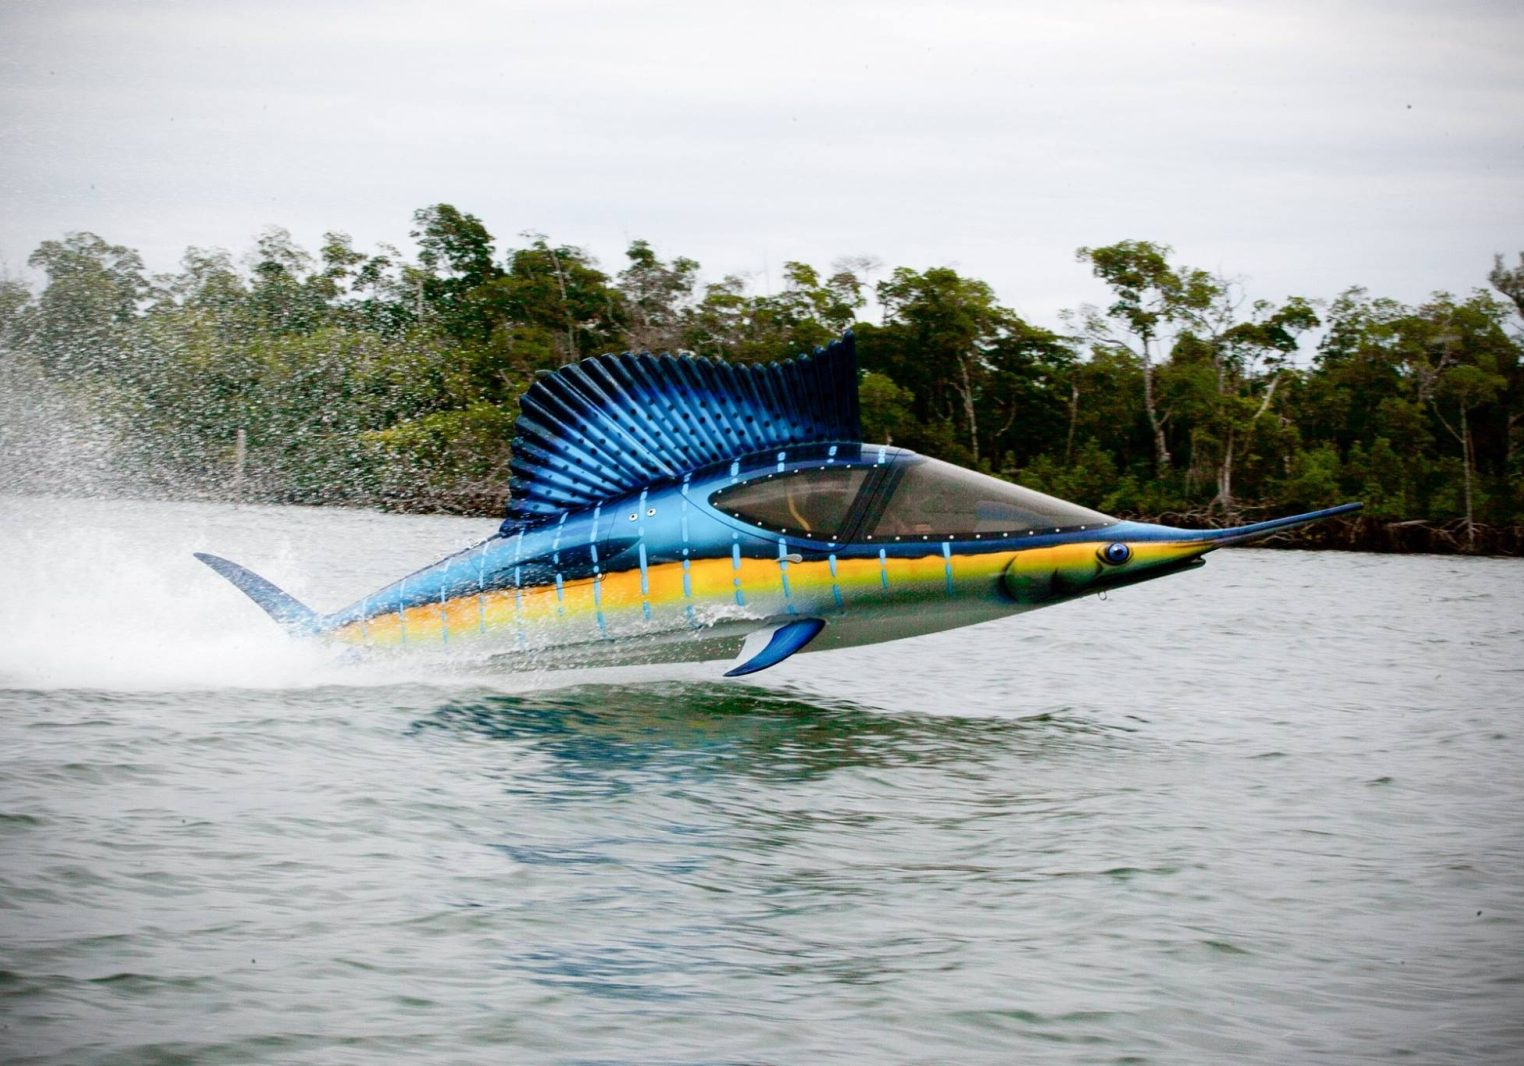 innespace Seabreacher submersible personal watercraft in Colorful Sailfish design